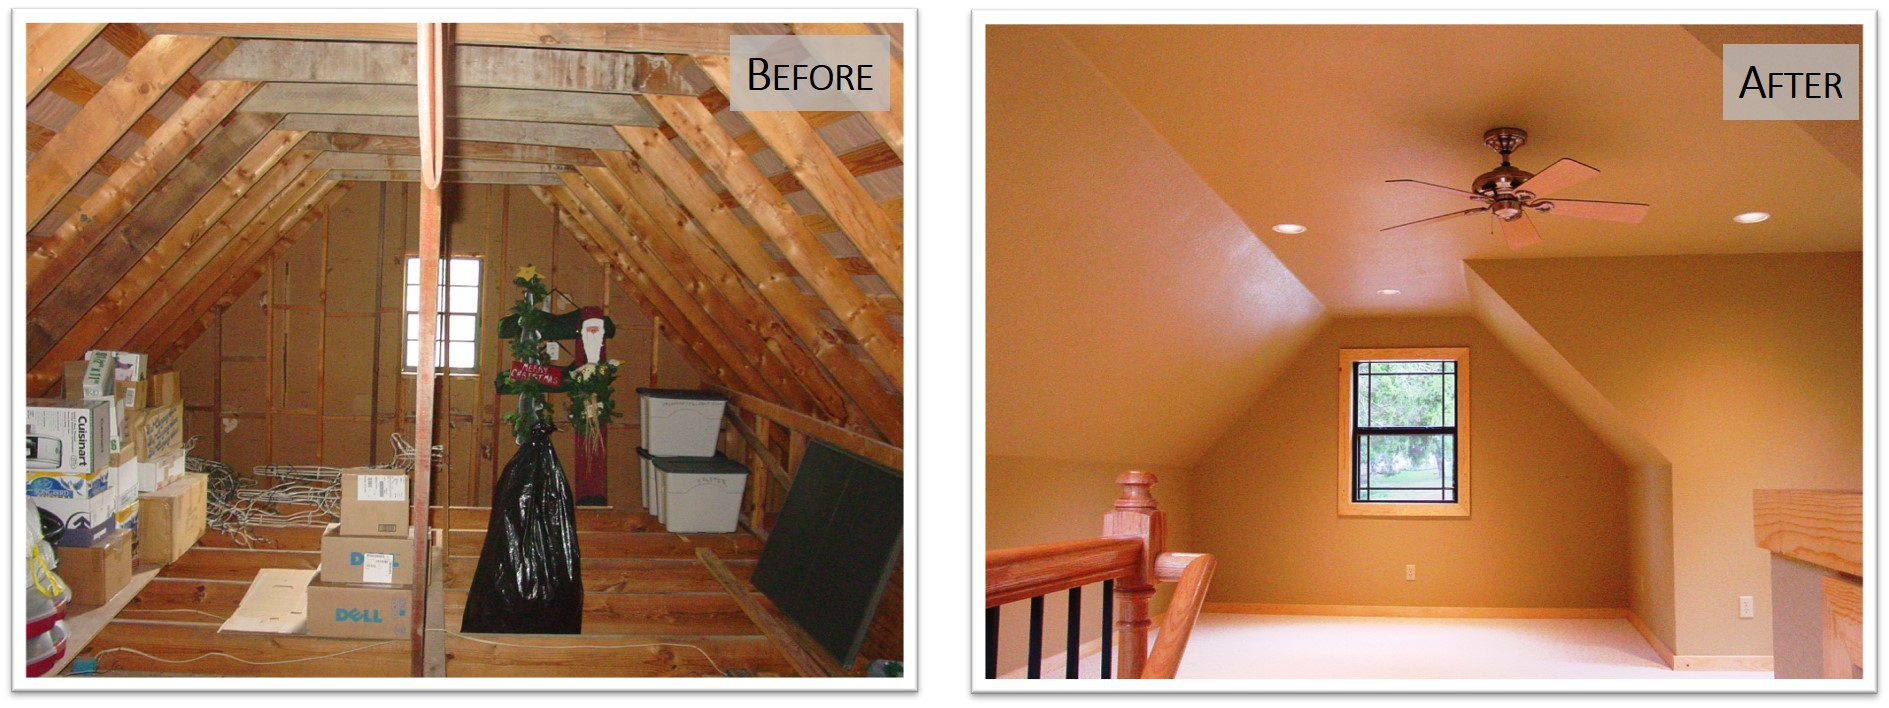 4802 WB, Interior, Before and After, Bear Creek Homes.jpg